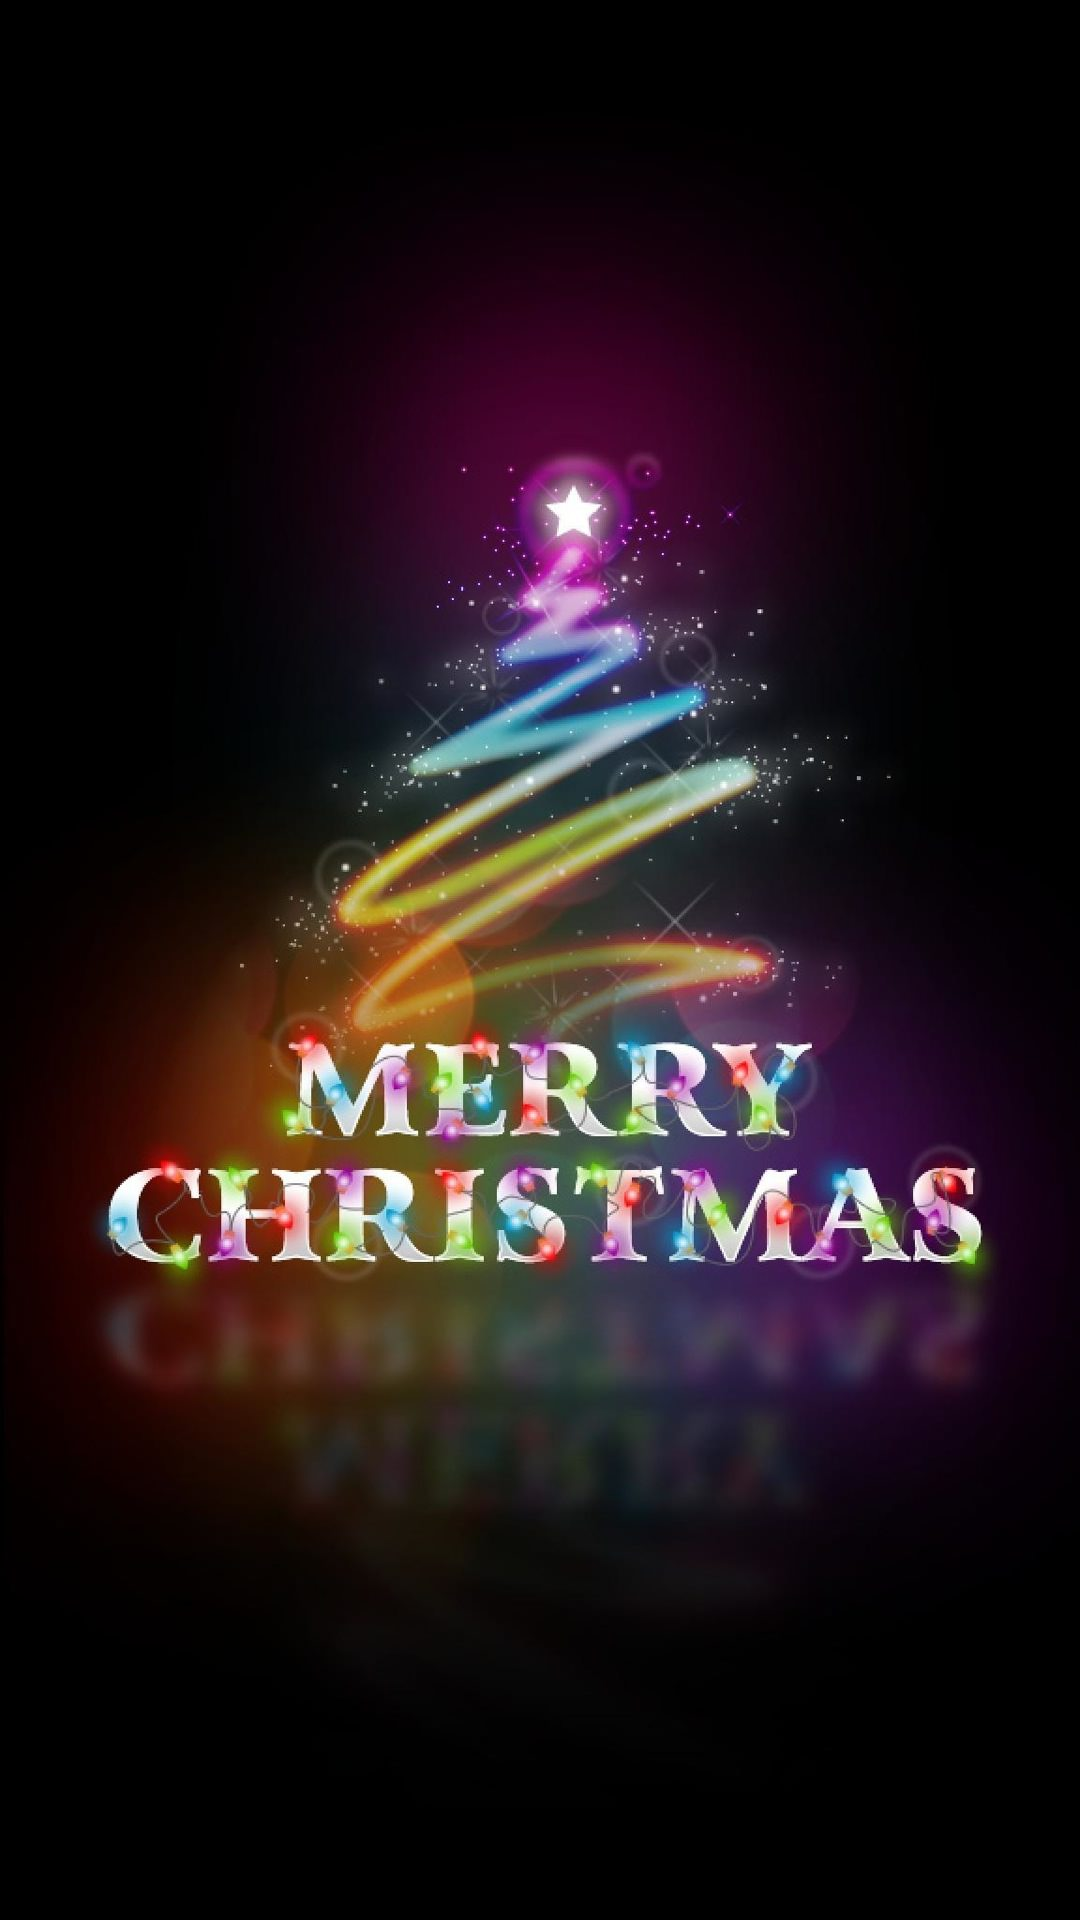 Christmas logo wallpaper smartphone android smart phone wallpaper voltagebd Images